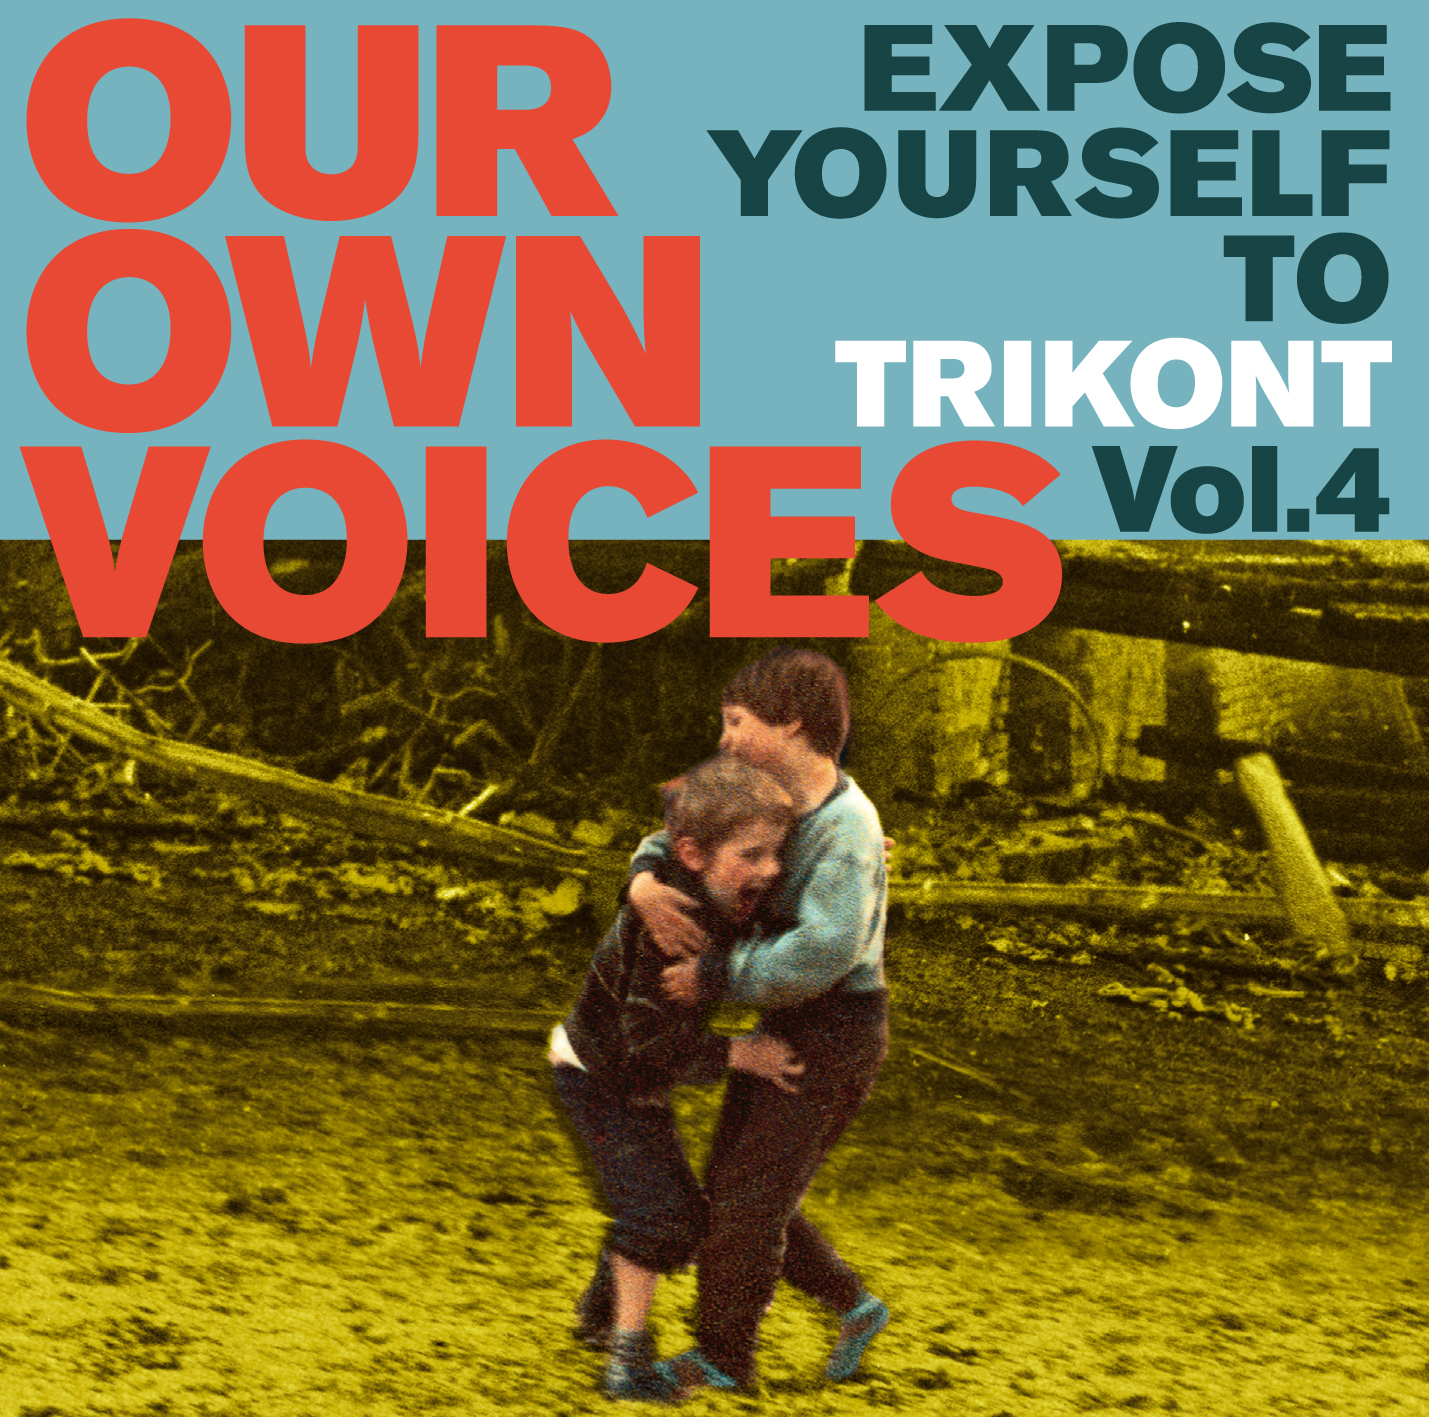 Our Own Voices - Vol. 4